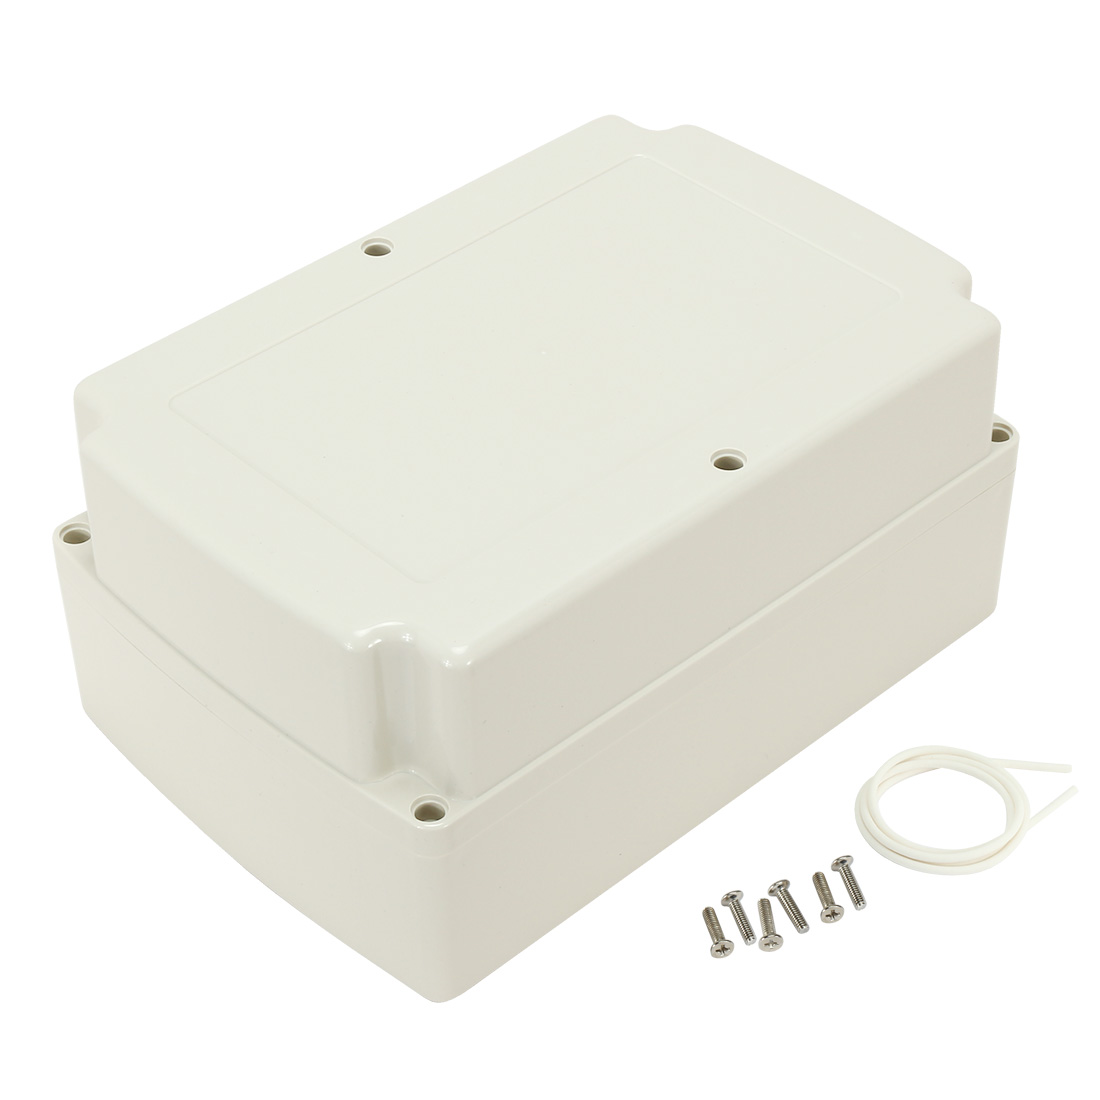 """4.7""""x6.69""""x9.84""""(120mmx170mmx250mm) ABS Junction Box Universal Electric Project Enclosure"""